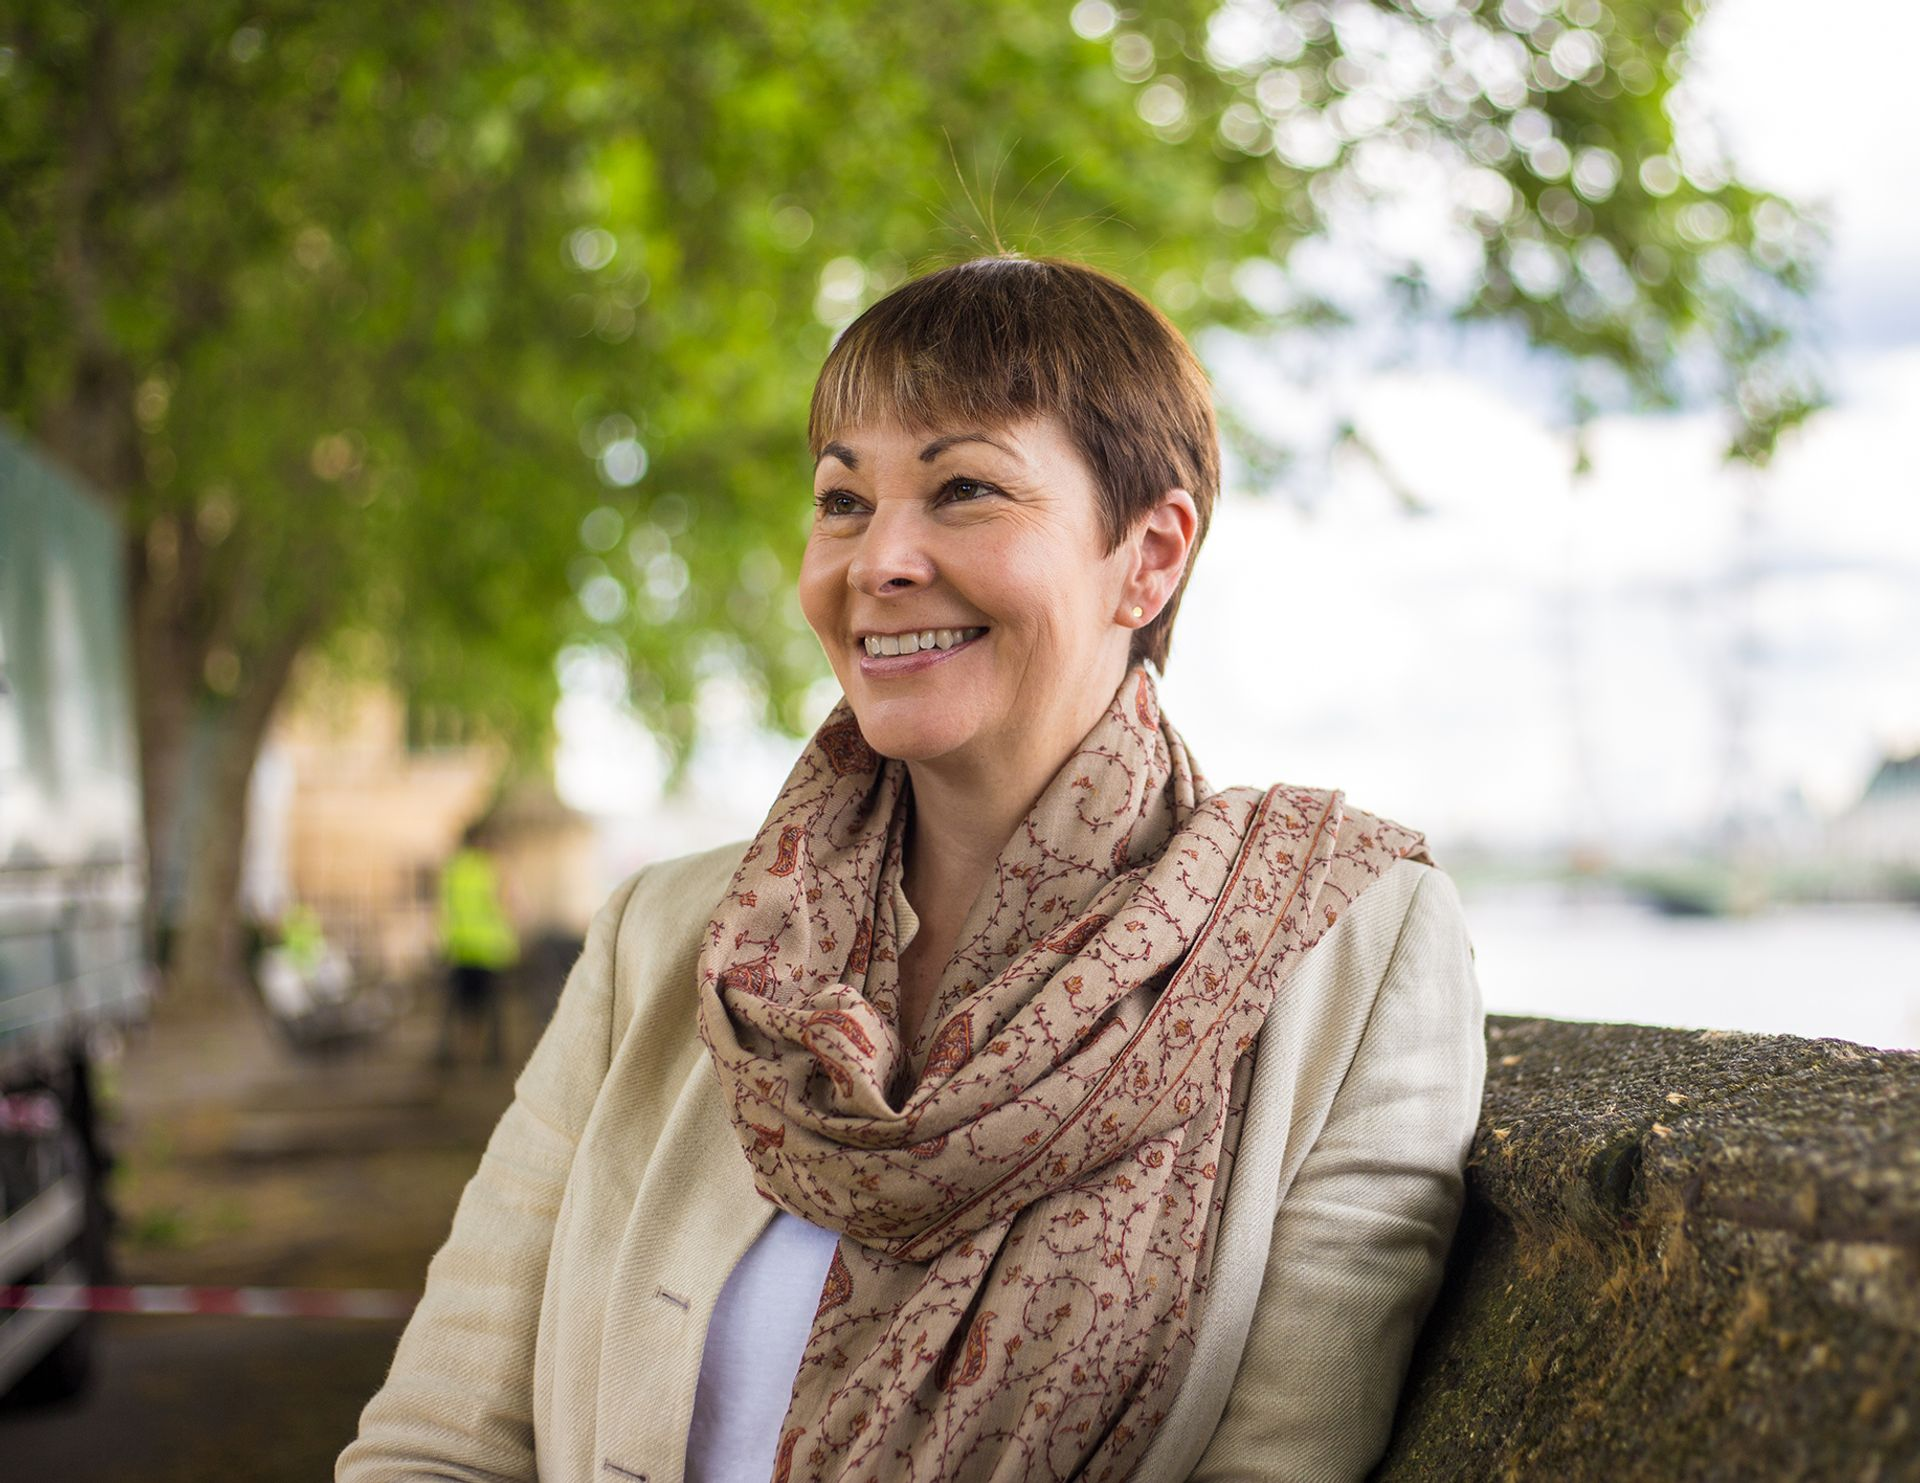 Caroline Lucas, the member of parliament for Brighton Pavilion, is known for her anti-Brexit stance Courtesy of Towner Art Gallery